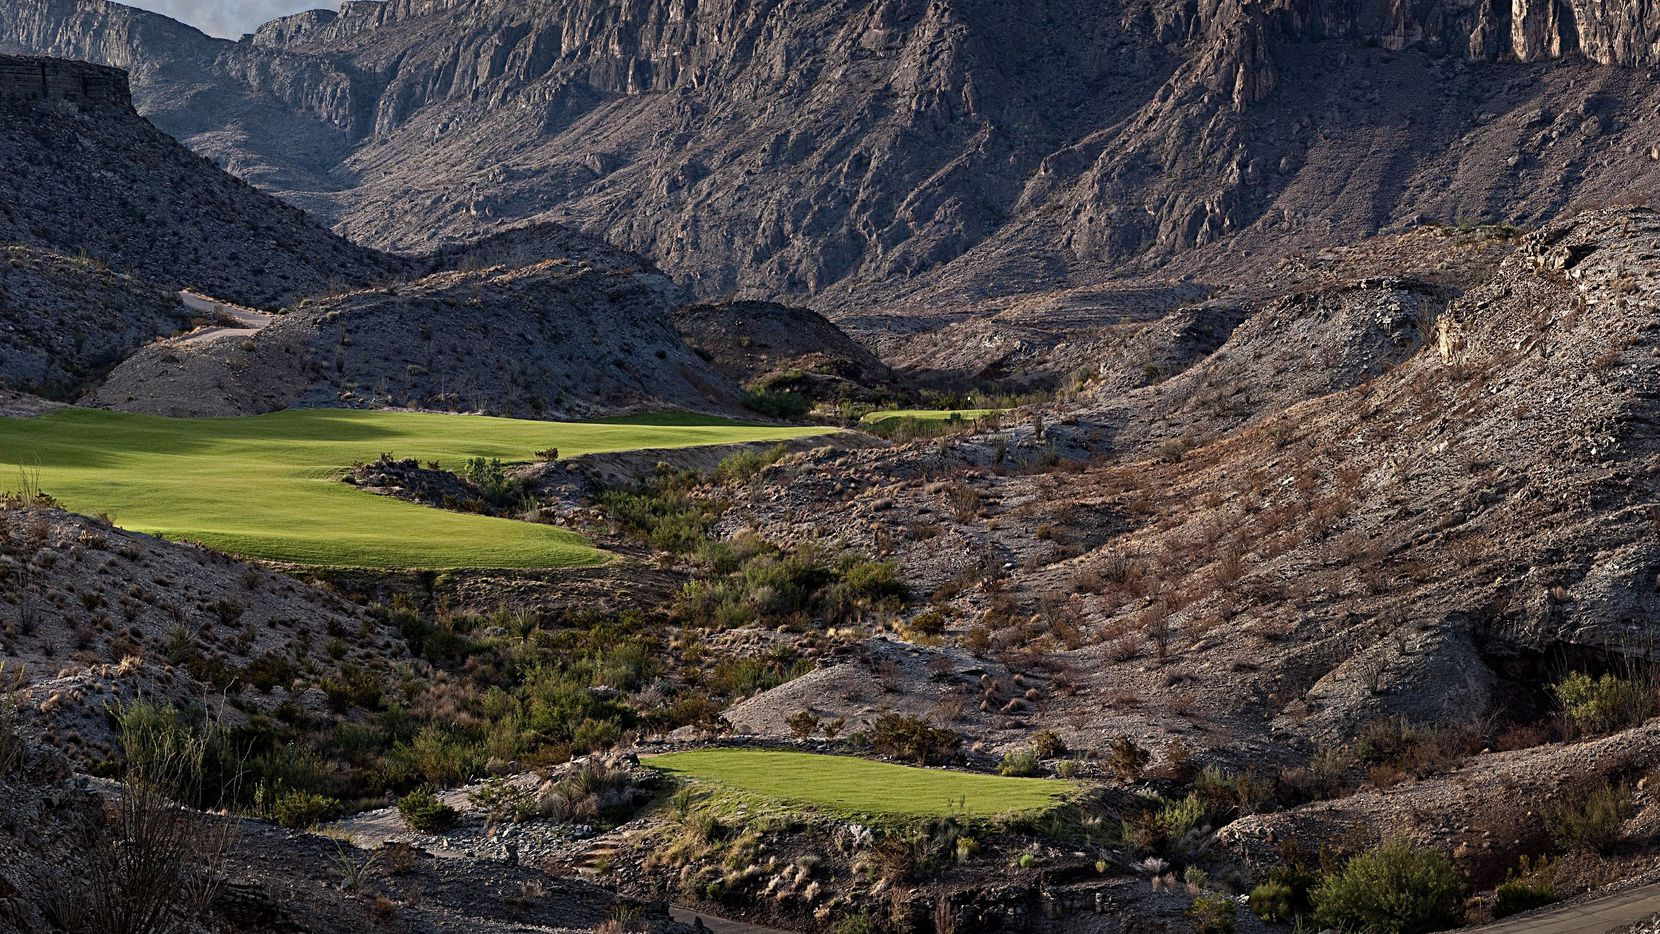 The 438-yard par-4 No. 6 at Black Jack's Crossing Golf Course at Lajitas is one of the signature holes.  (Photo by D Squared Productions)